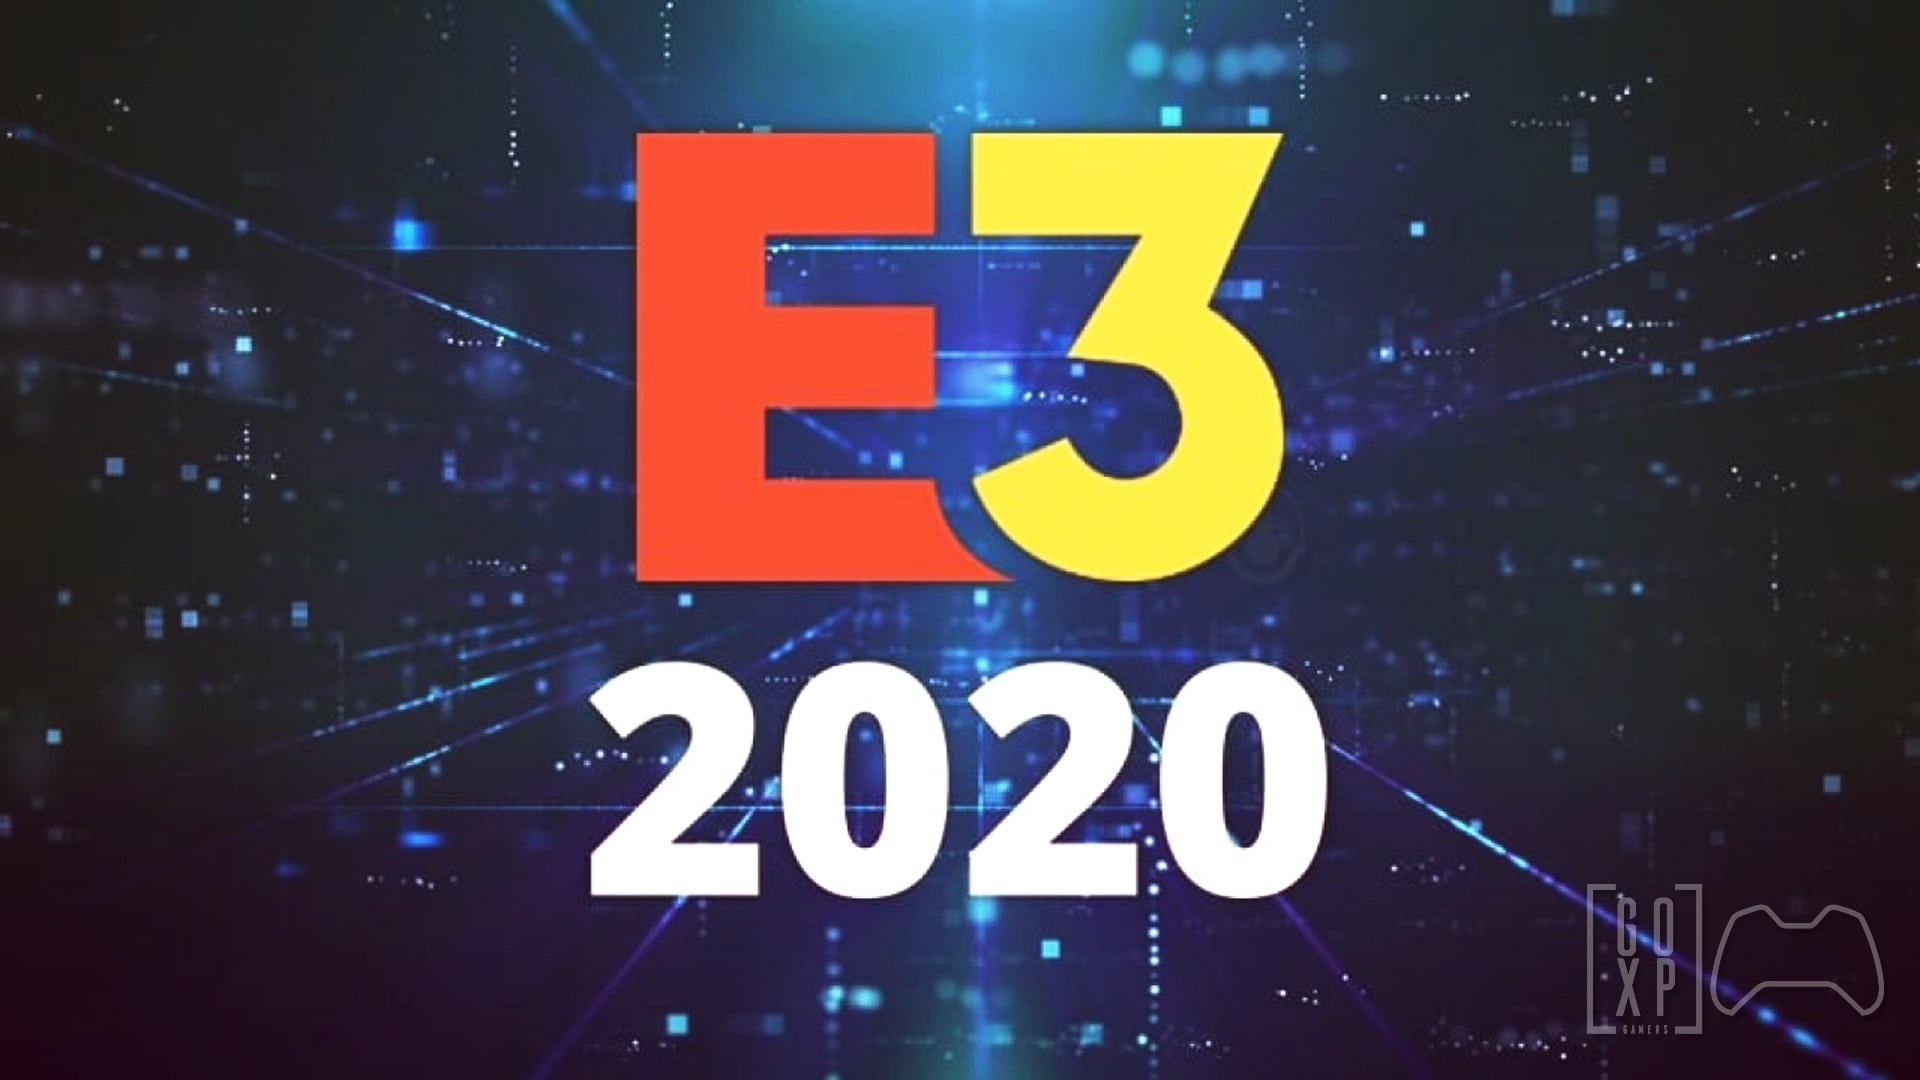 Se Anuncia De Manera Oficial La Cancelación Del E3 2020 (Electronic Entertainment Expo)